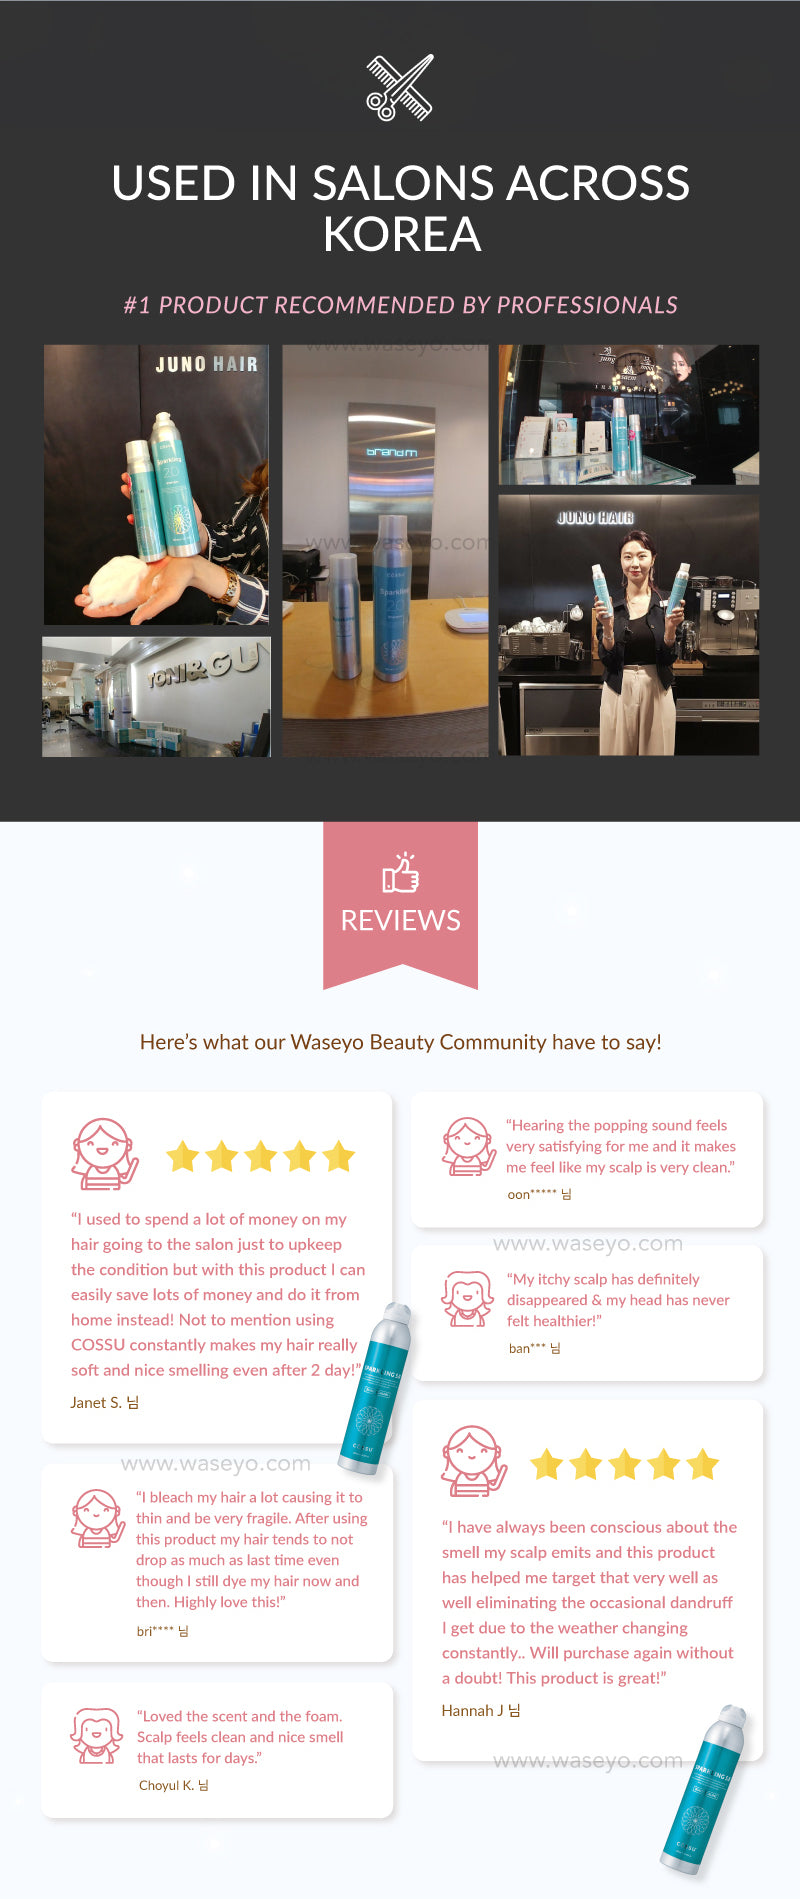 Cossu is used by professionals all over Korea! Check out their products used in popular Hair salons like Juno Hair, Tony and Guy etc. Here are some of the reviews by our beauty community in Korea! Great to remove scalp odour, dandruff and deep cleanse your clogged pores. Get that salon spa at the comfort of your own home today!